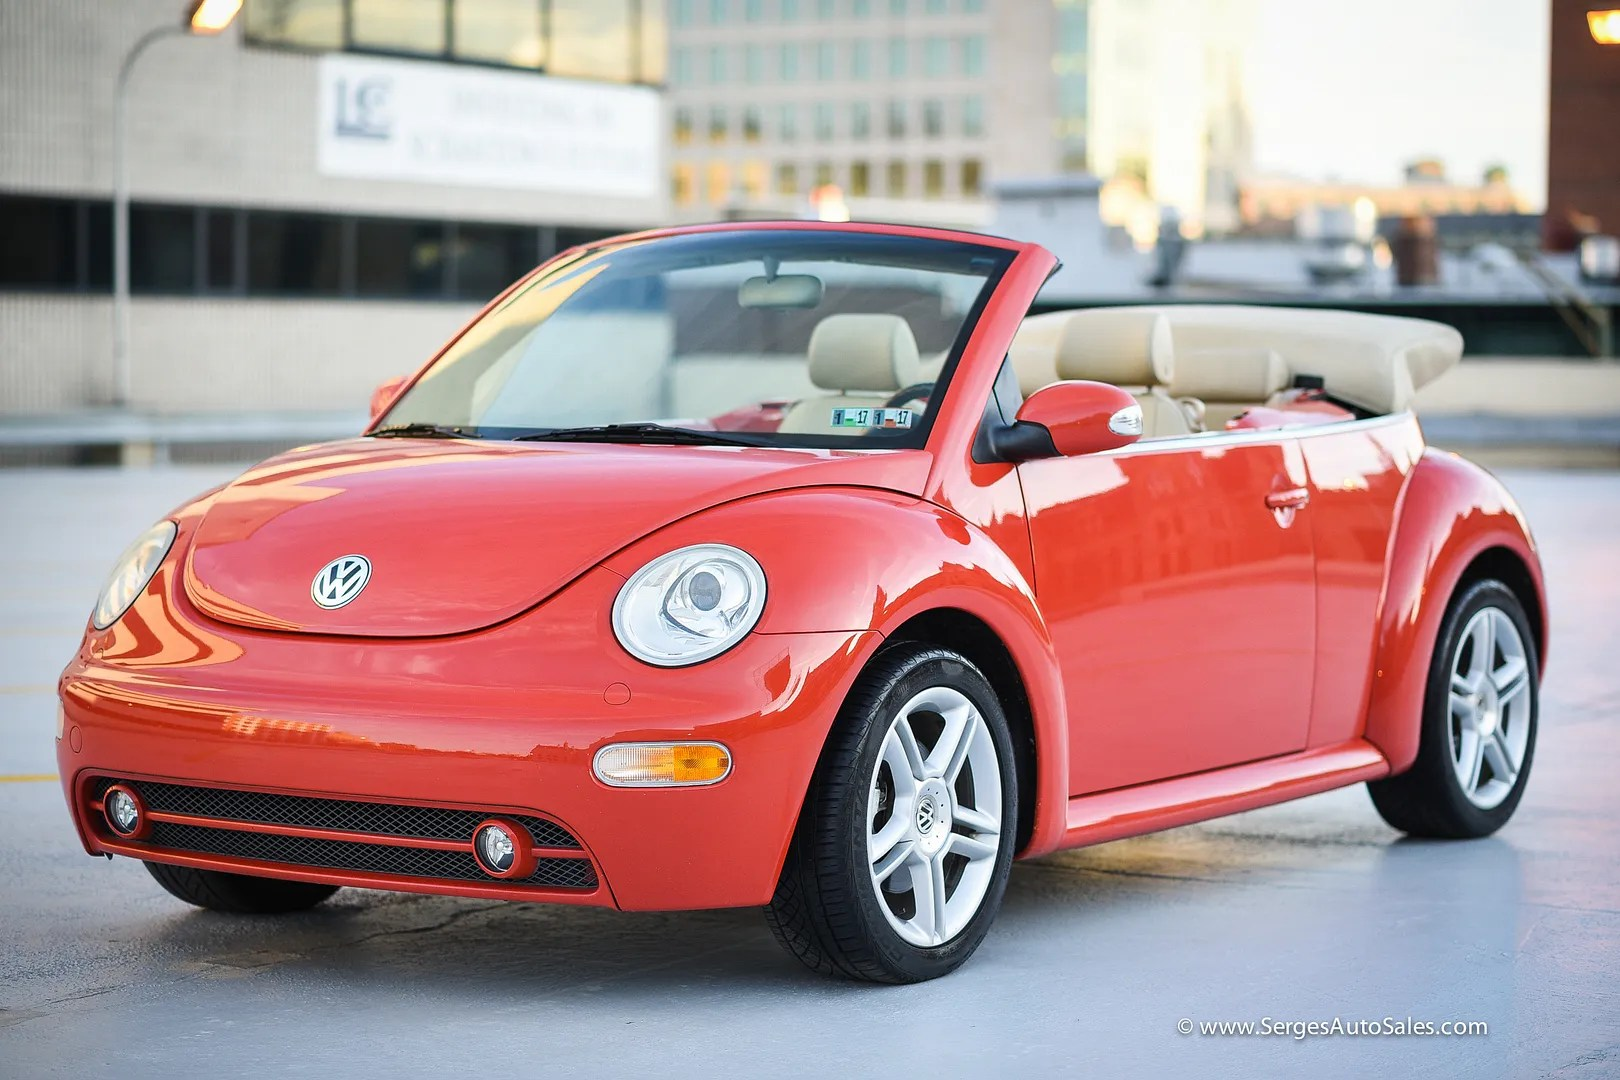 photo beetle-24_zpsbm6kjjb1.jpg